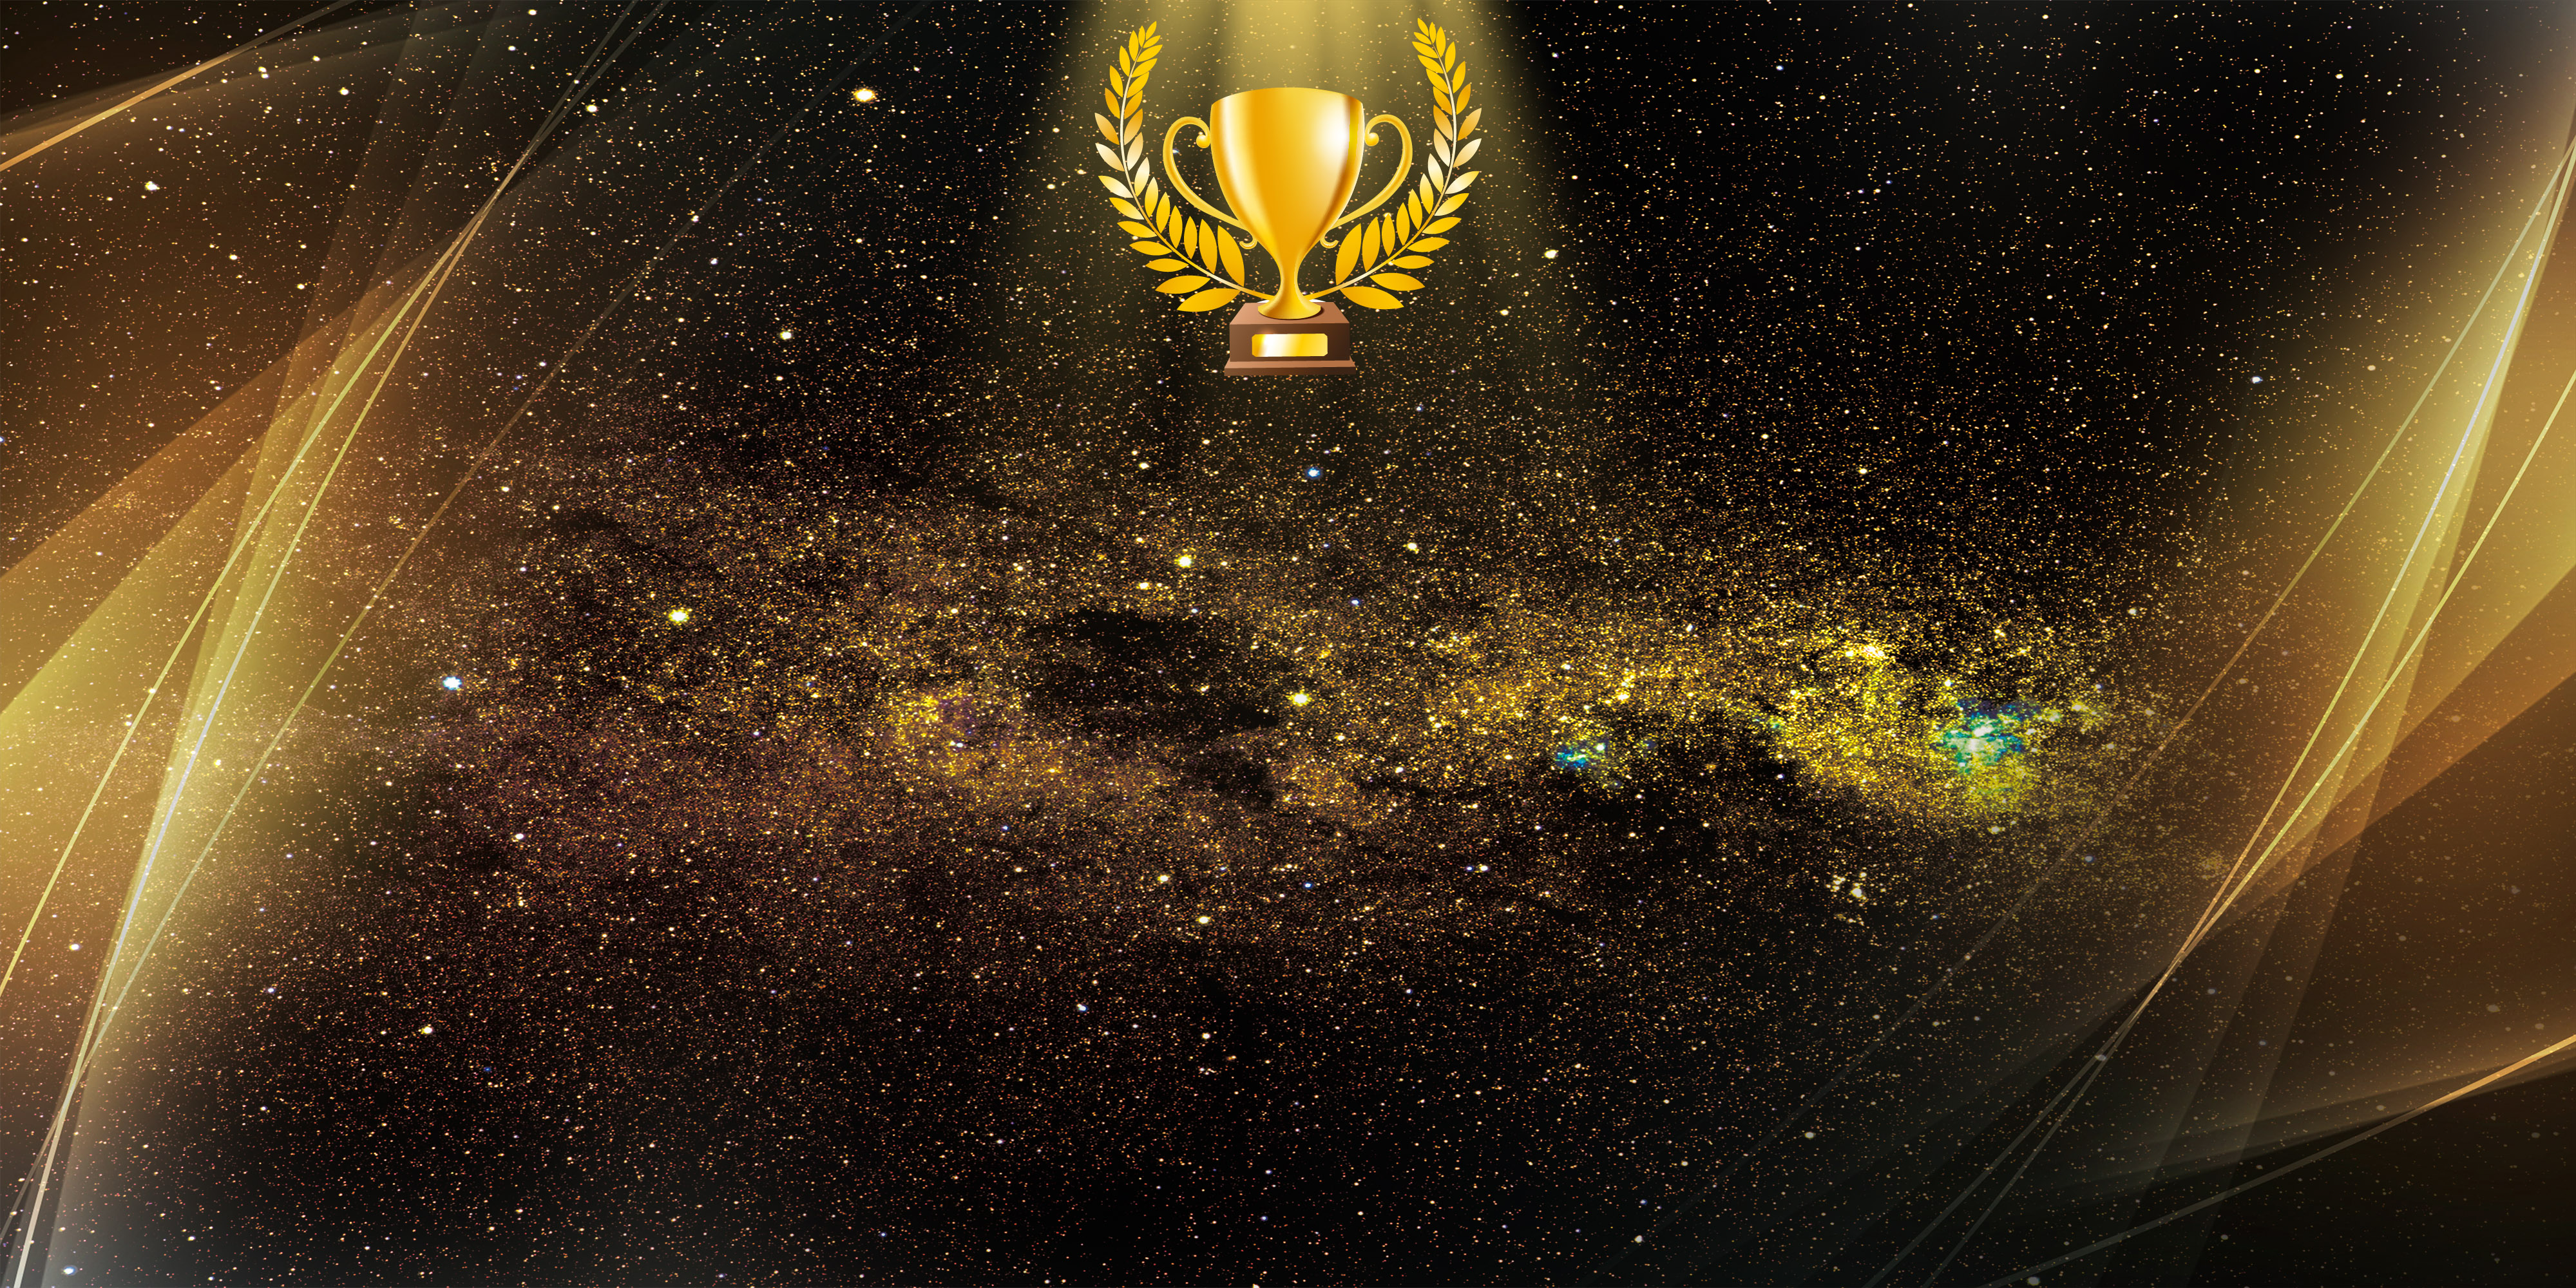 Cool atmosphere award ceremony poster background material - Oscar award wallpaper ...